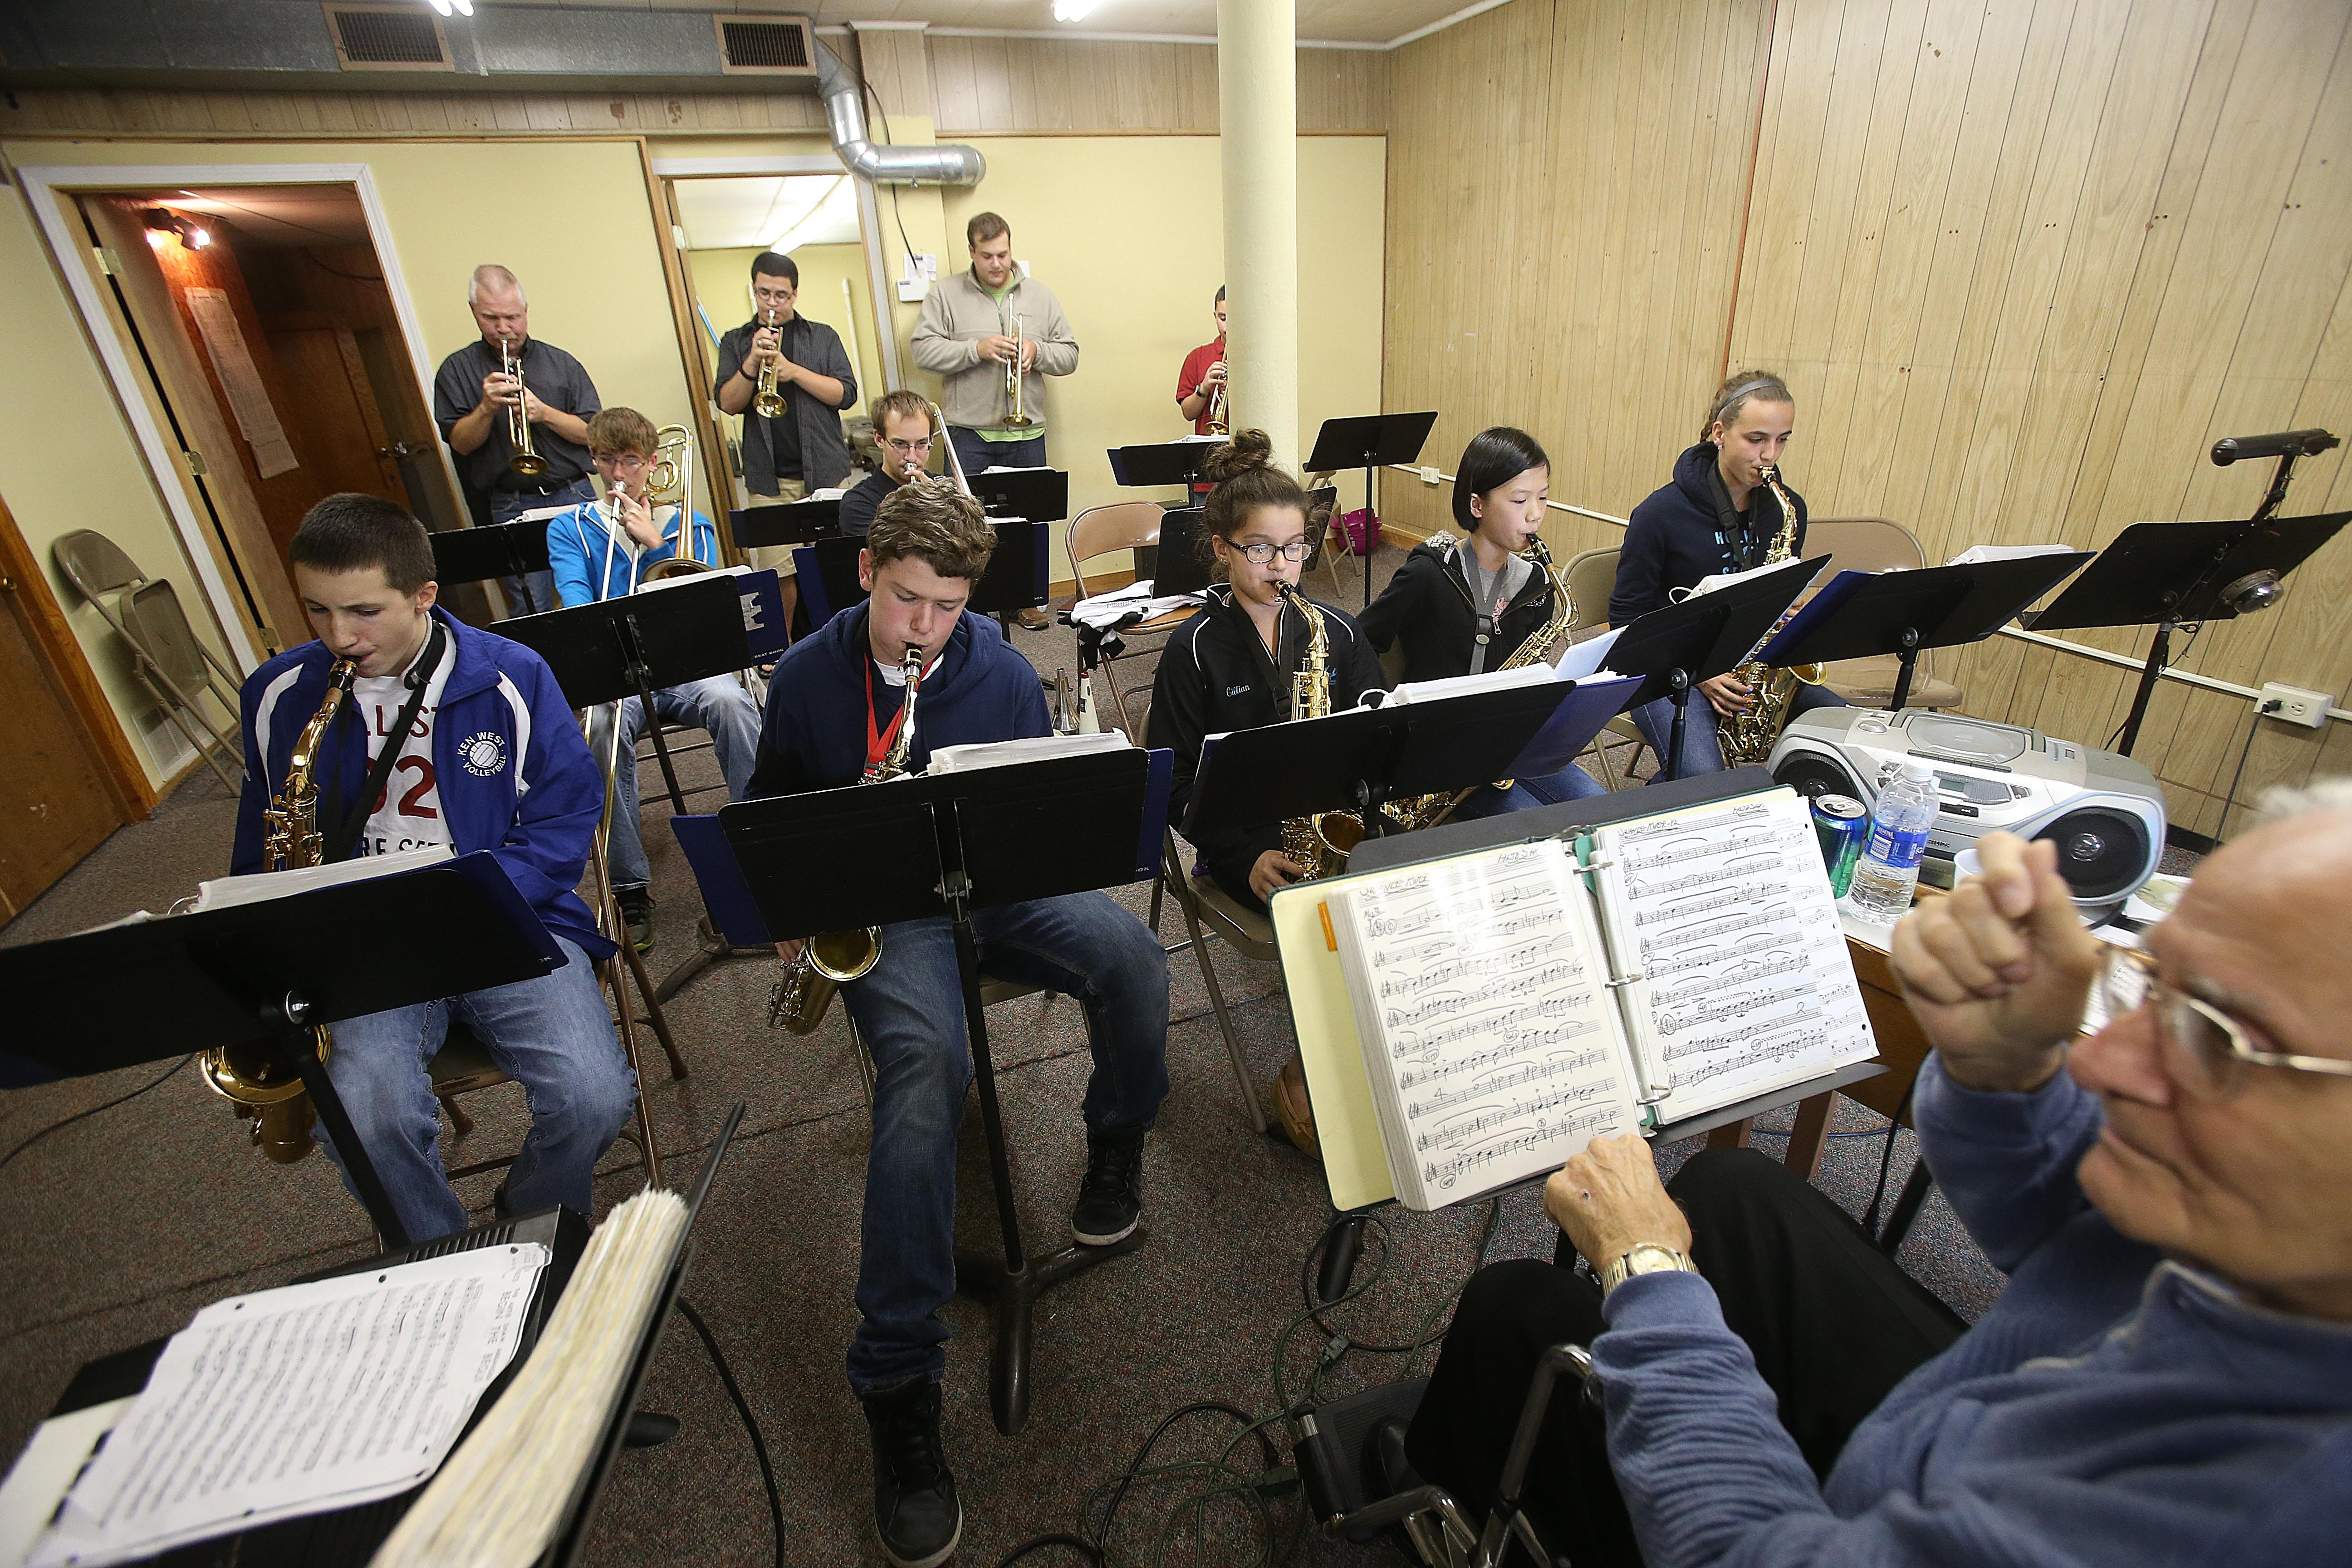 Under the direction of Frank Lorango, bottom right, young members of the Sugar & Jazz Band rehearse in North Tonawanda. Sax players from left are Christopher Dymond, 17, Zach Jabine, 14, Gillian Scozzaro, 12, Helen Huang, 12, and Emily Belote, 16.  {Photo by Robert Kirkham / Buffalo News}